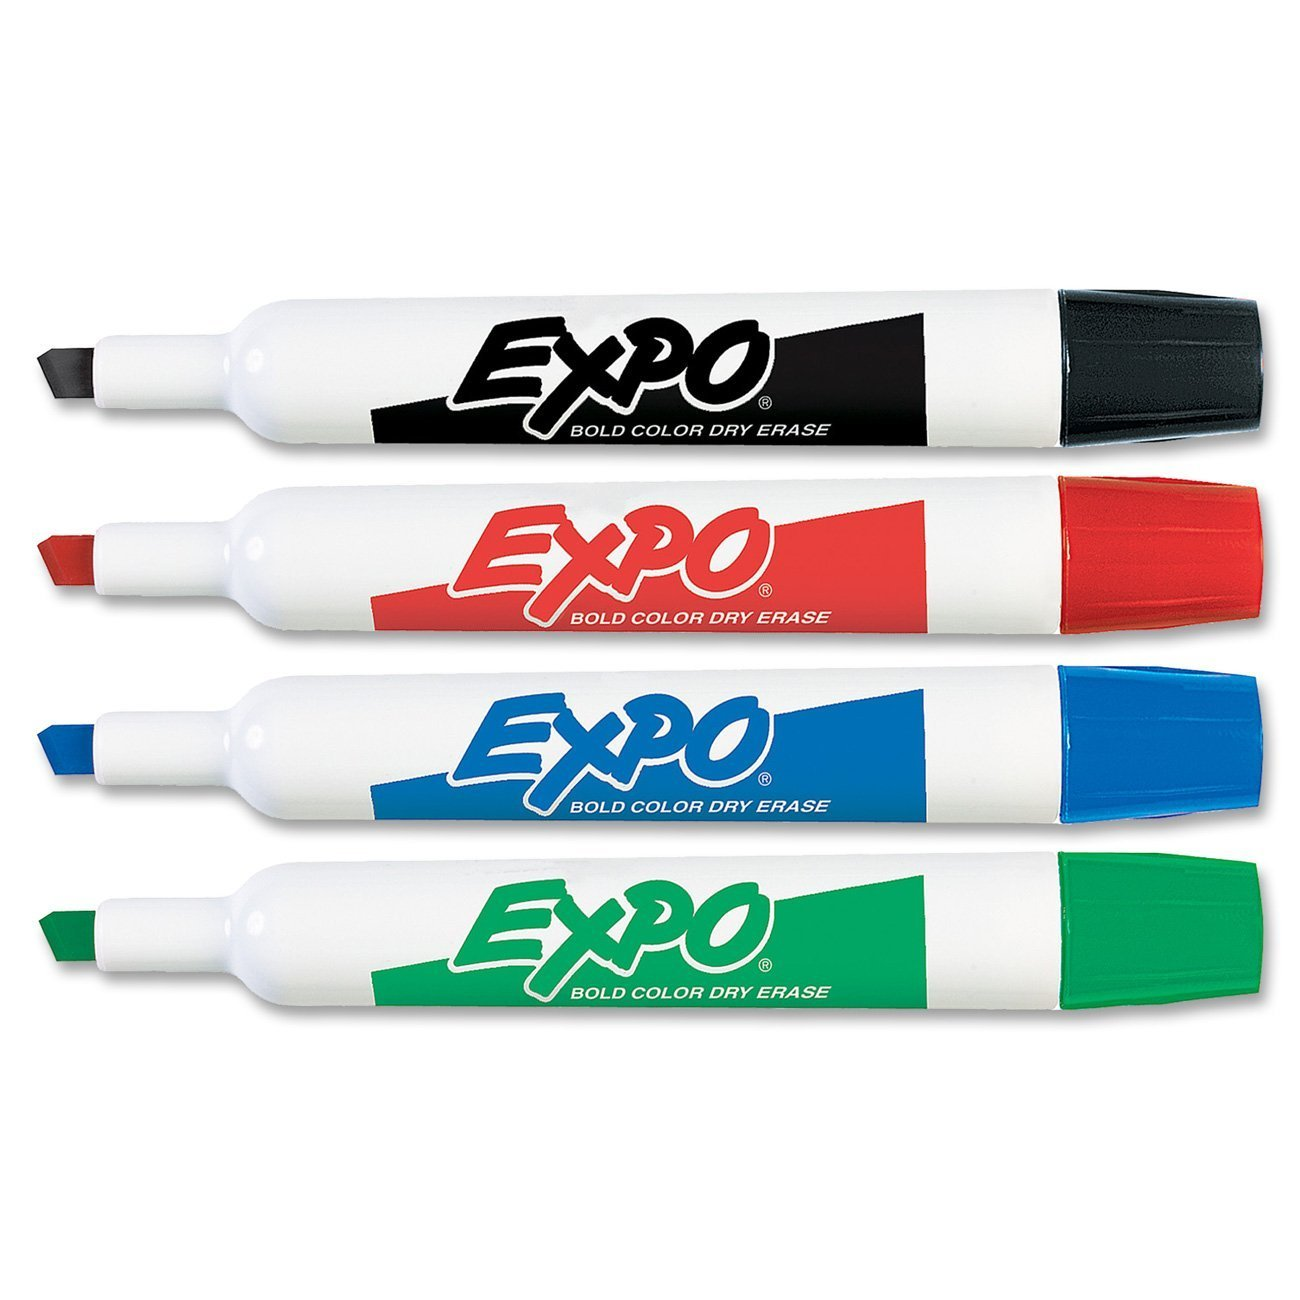 EXPO Original Chisel Tip Dry Erase Markers, Chisel Tip, Assorted Colors, 4-Count, Case of 12